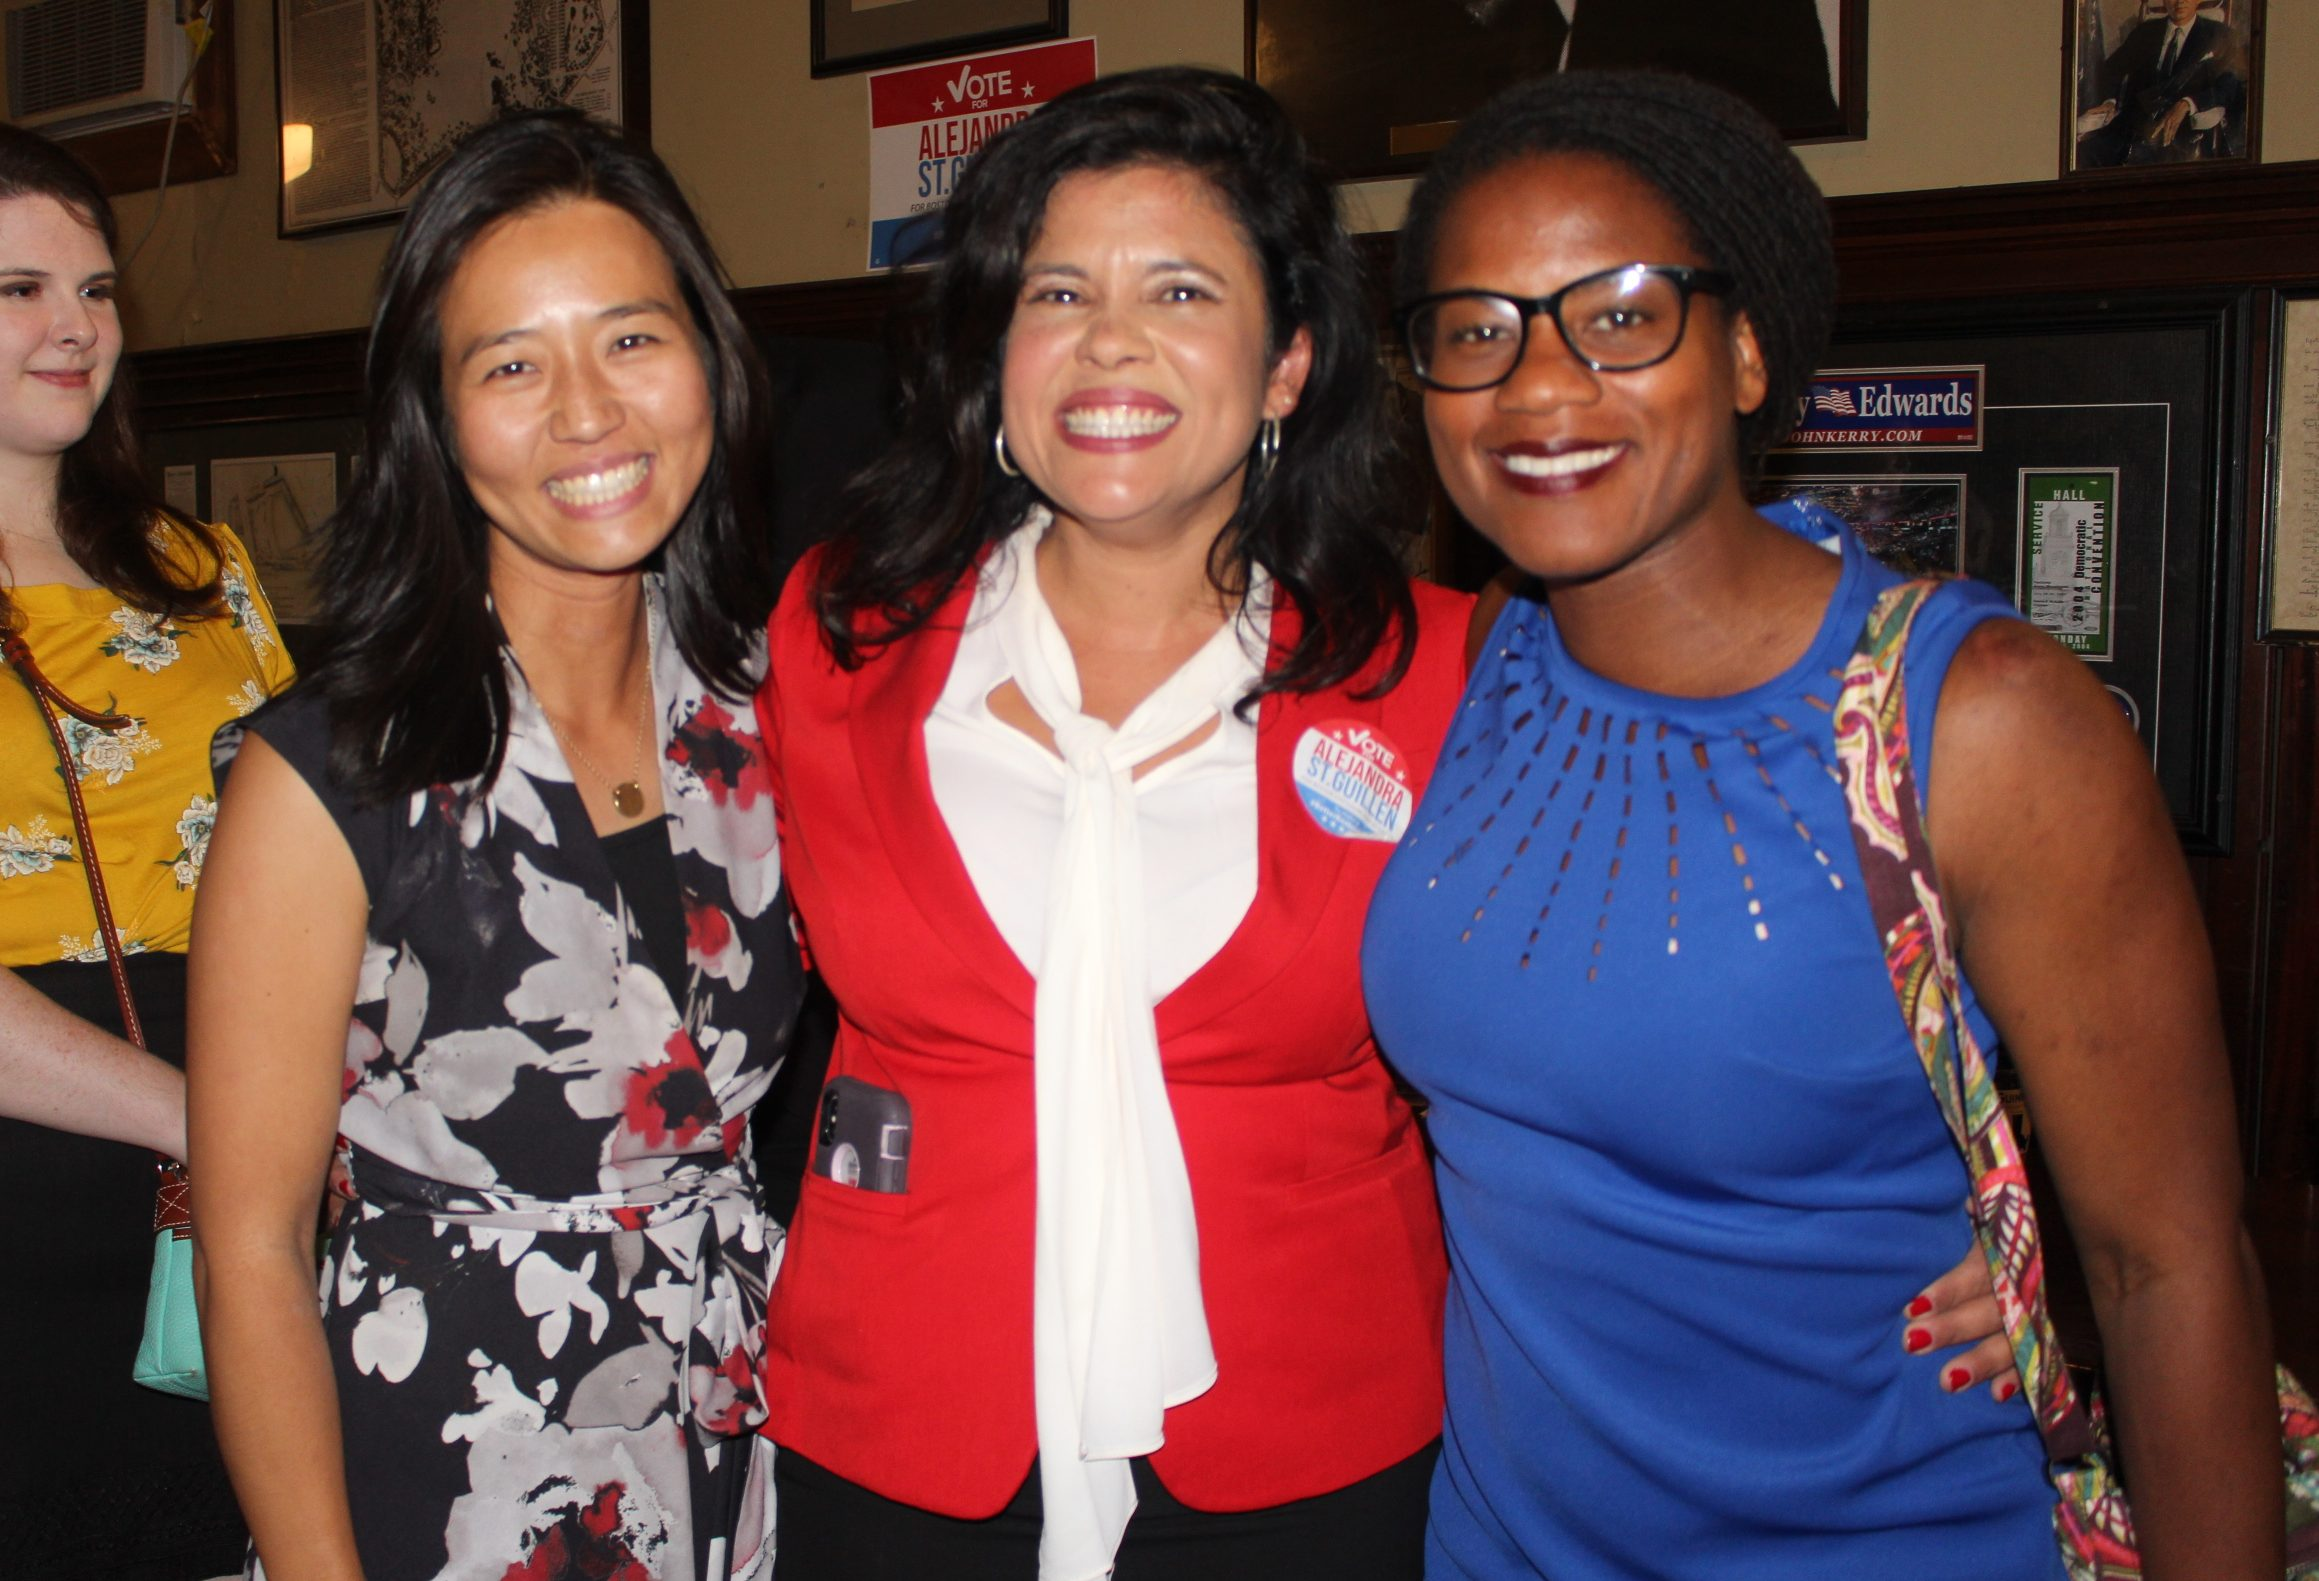 Alejandra St. Guillen (center) at her post-election party with fellow candidates Michelle Wu (left) and councilor Lydia Edwards (right). Photo by Alexa Gagosz.